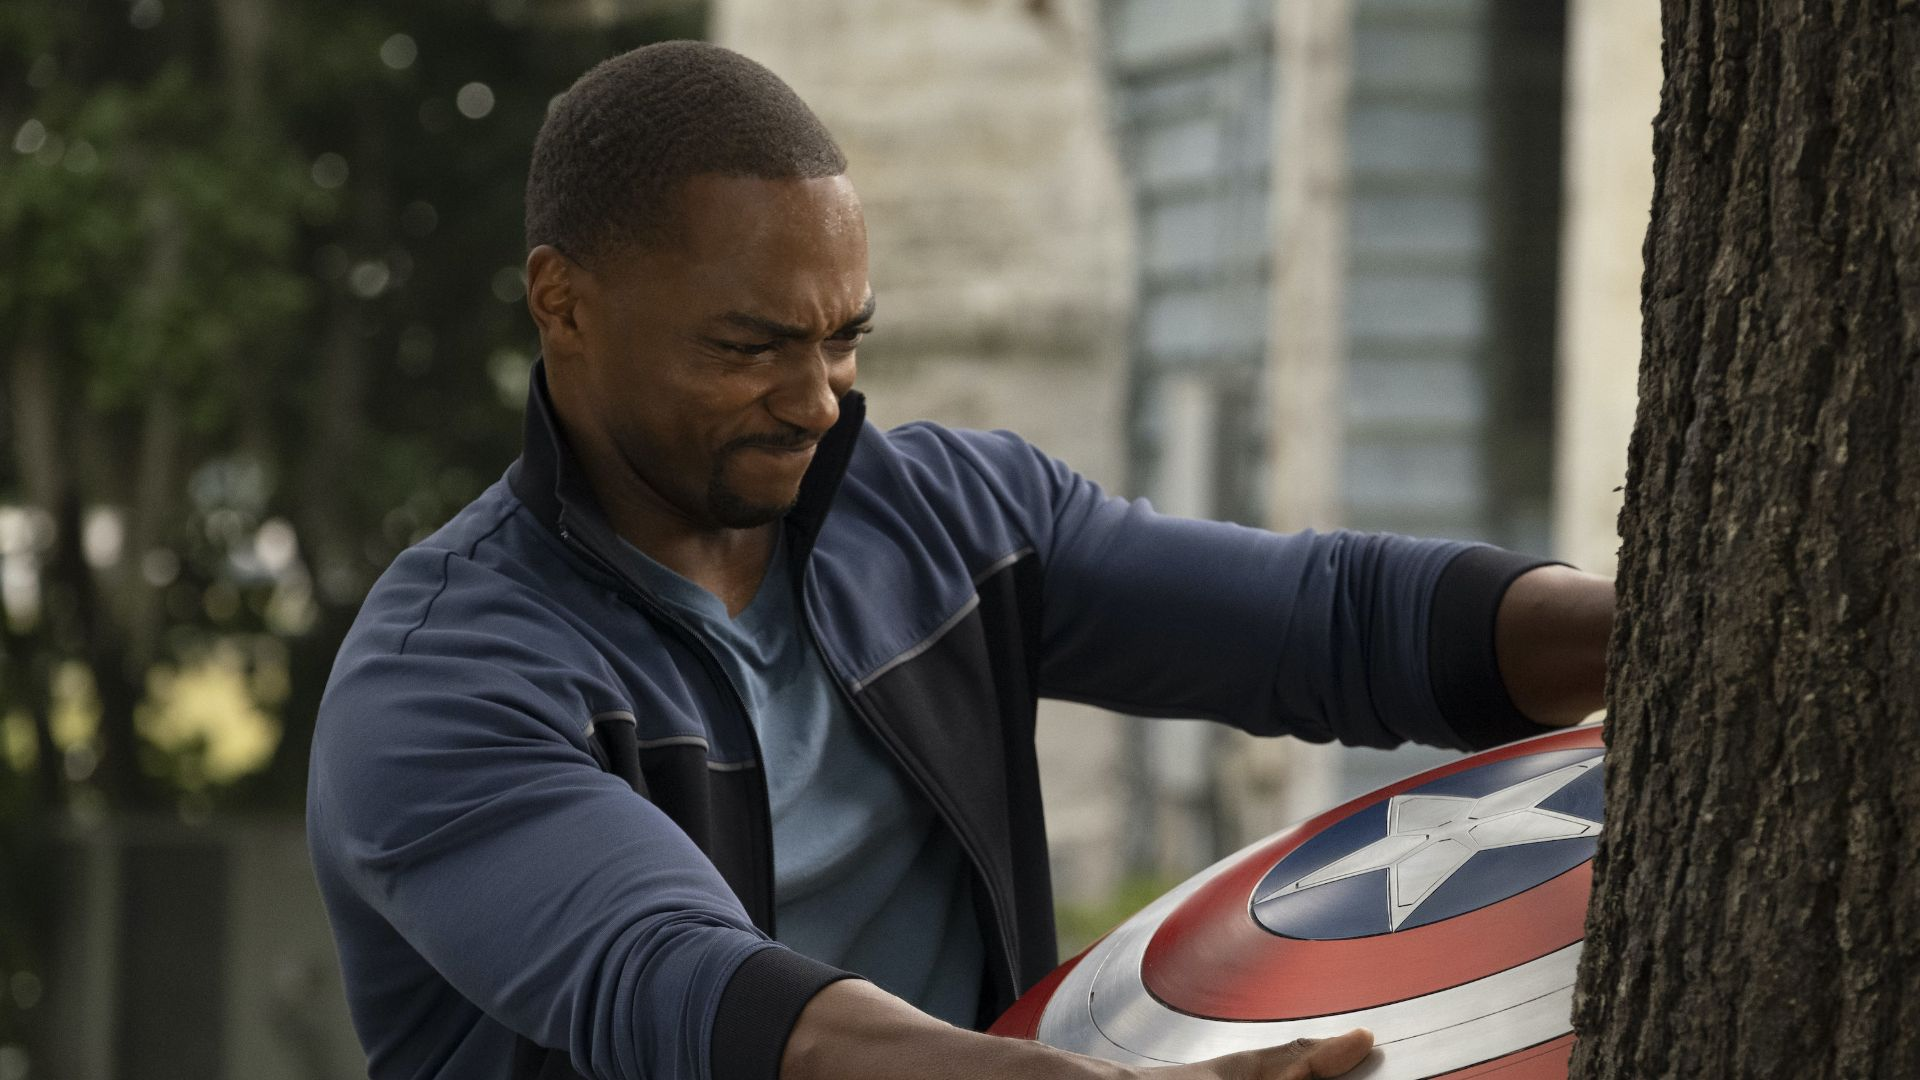 """Falcon and Winter Soldier episode 5 review: """"Finally carves out its own  voice within the MCU"""" 